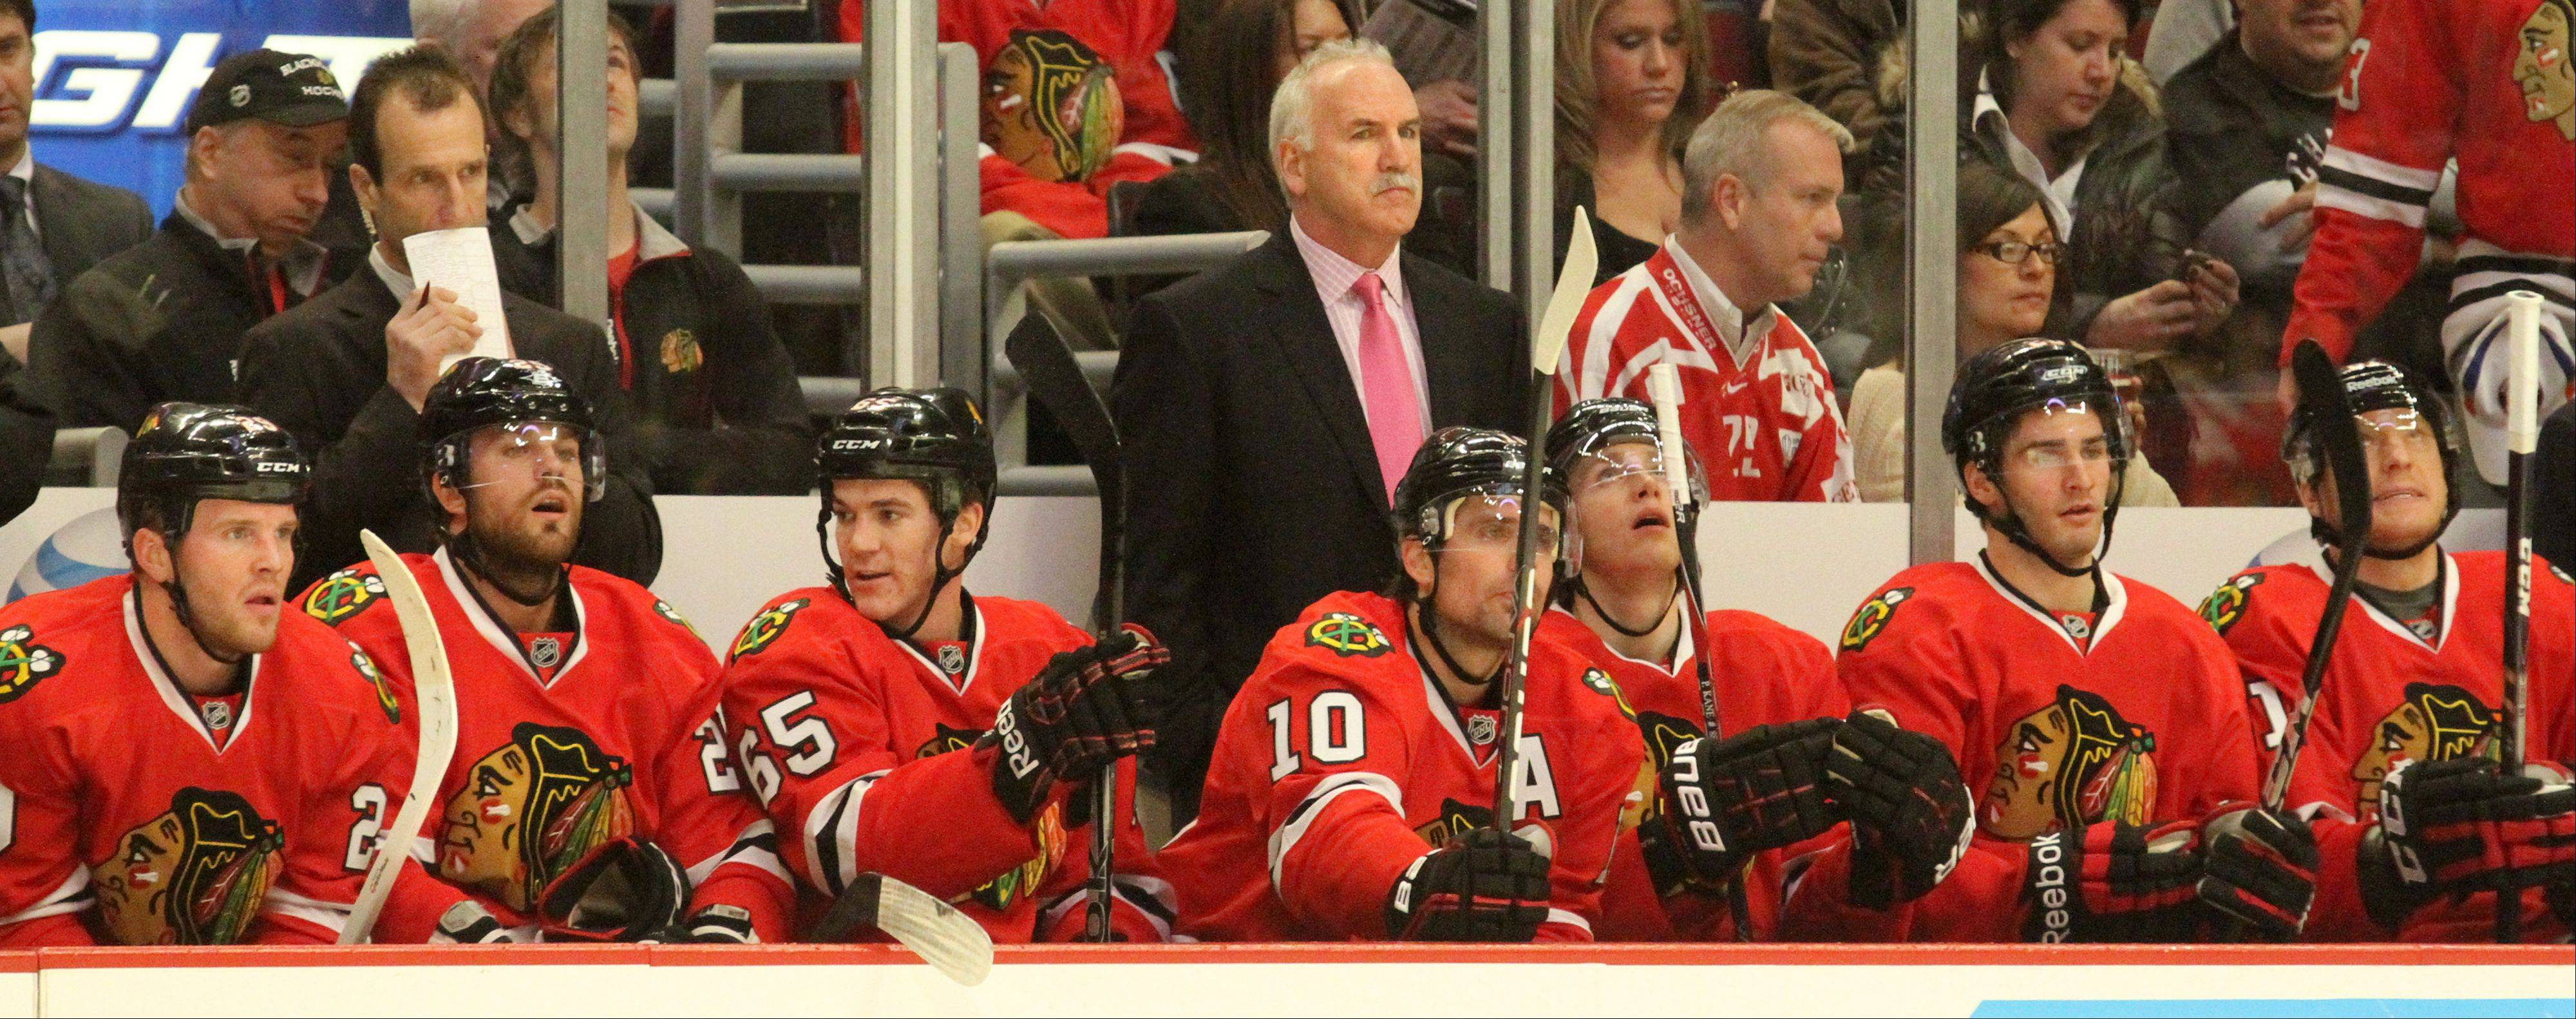 From his central position behind the bench, Blackhawks head coach Joel Quenneville has pushed all the right buttons for his record